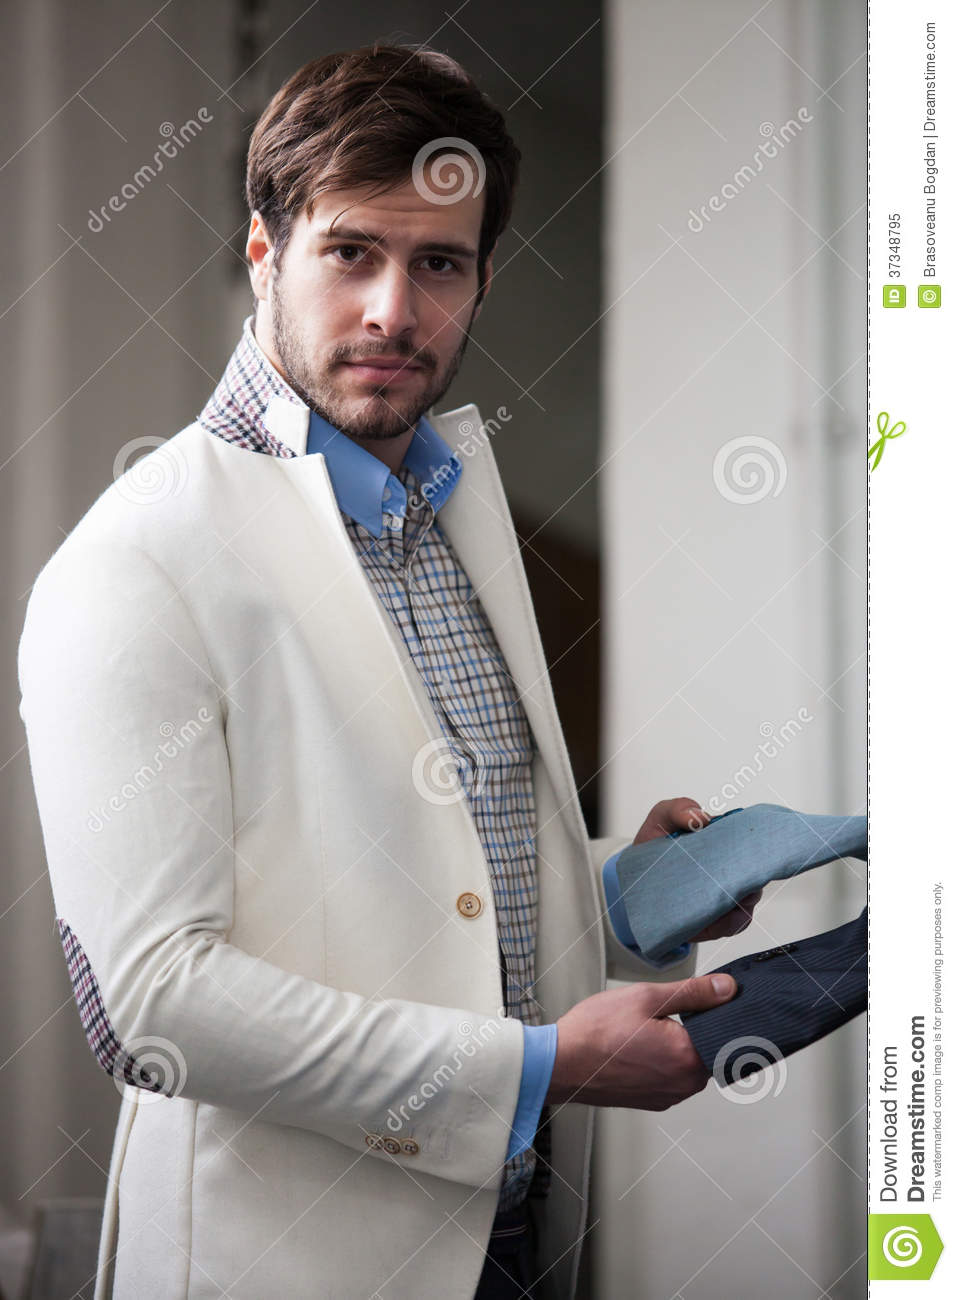 Portrait in profile of a handsome young man at the store